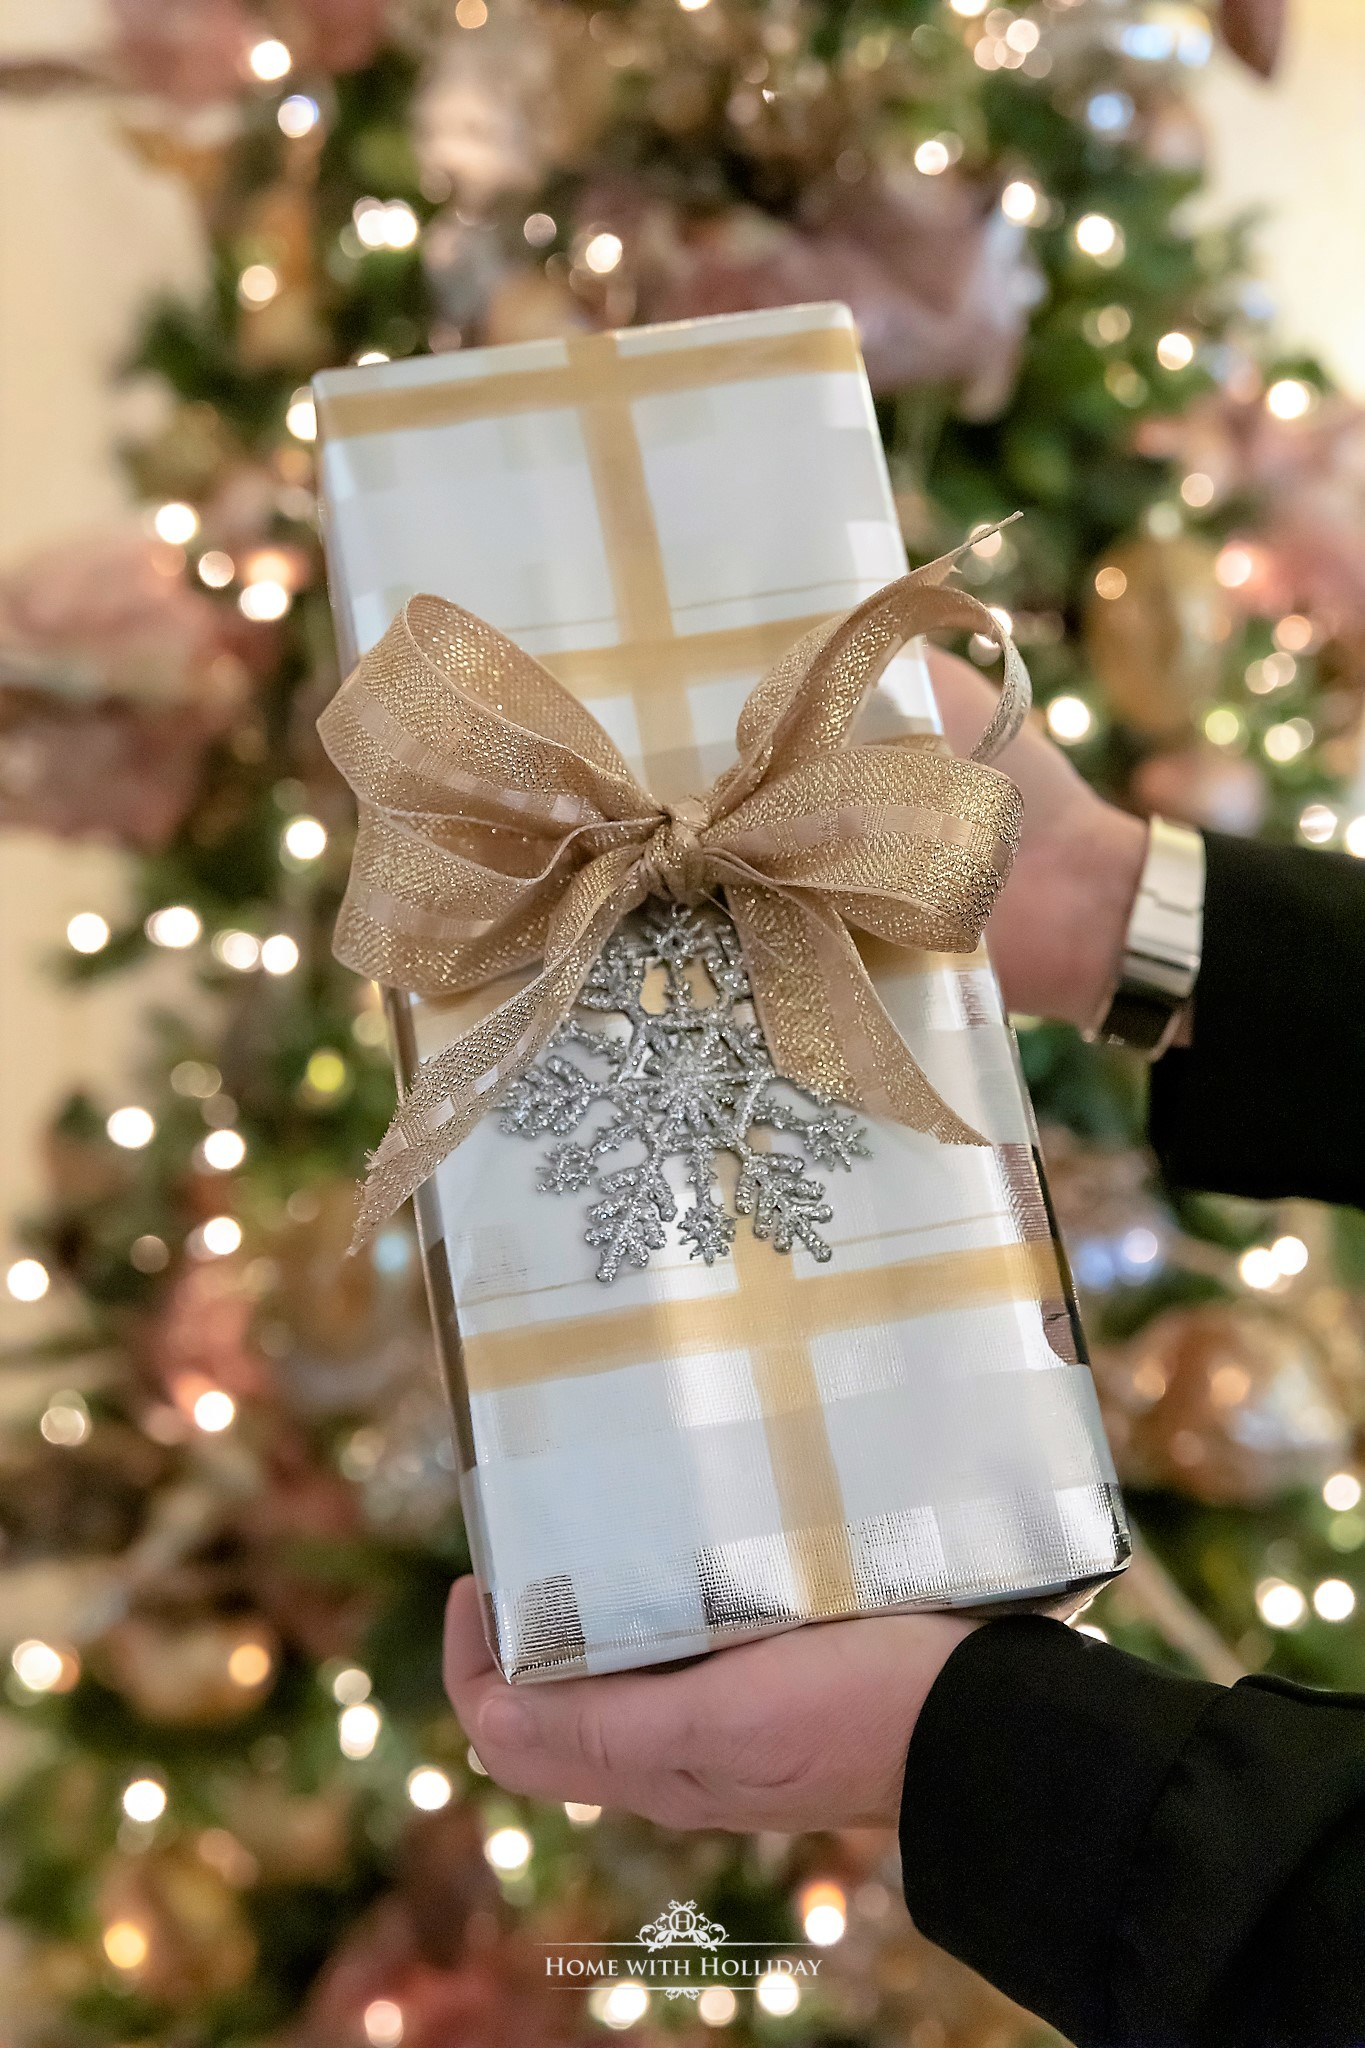 Gift wrapping for My Mixed Metallic Christmas Tree - Home with Holliday